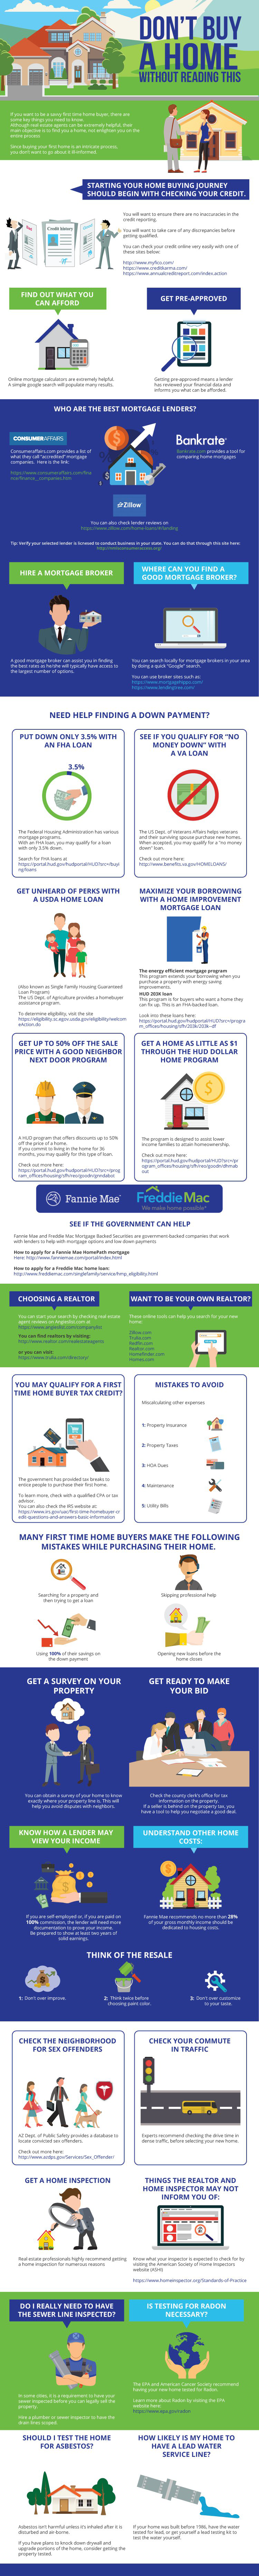 Infographic - Don't Buy a Home Without Reading This